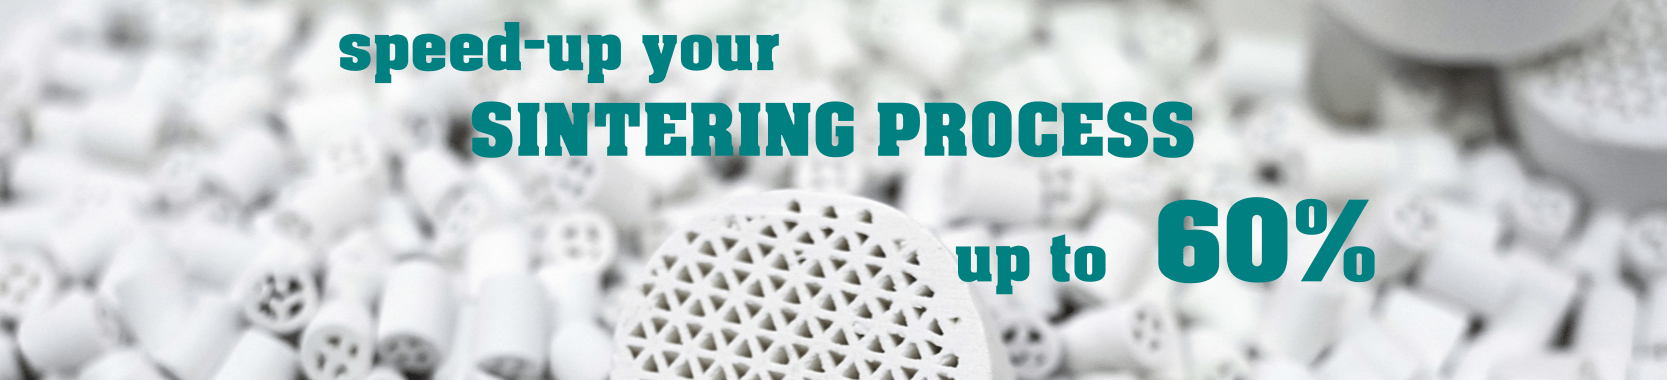 Sintering Process up to 60% Faster